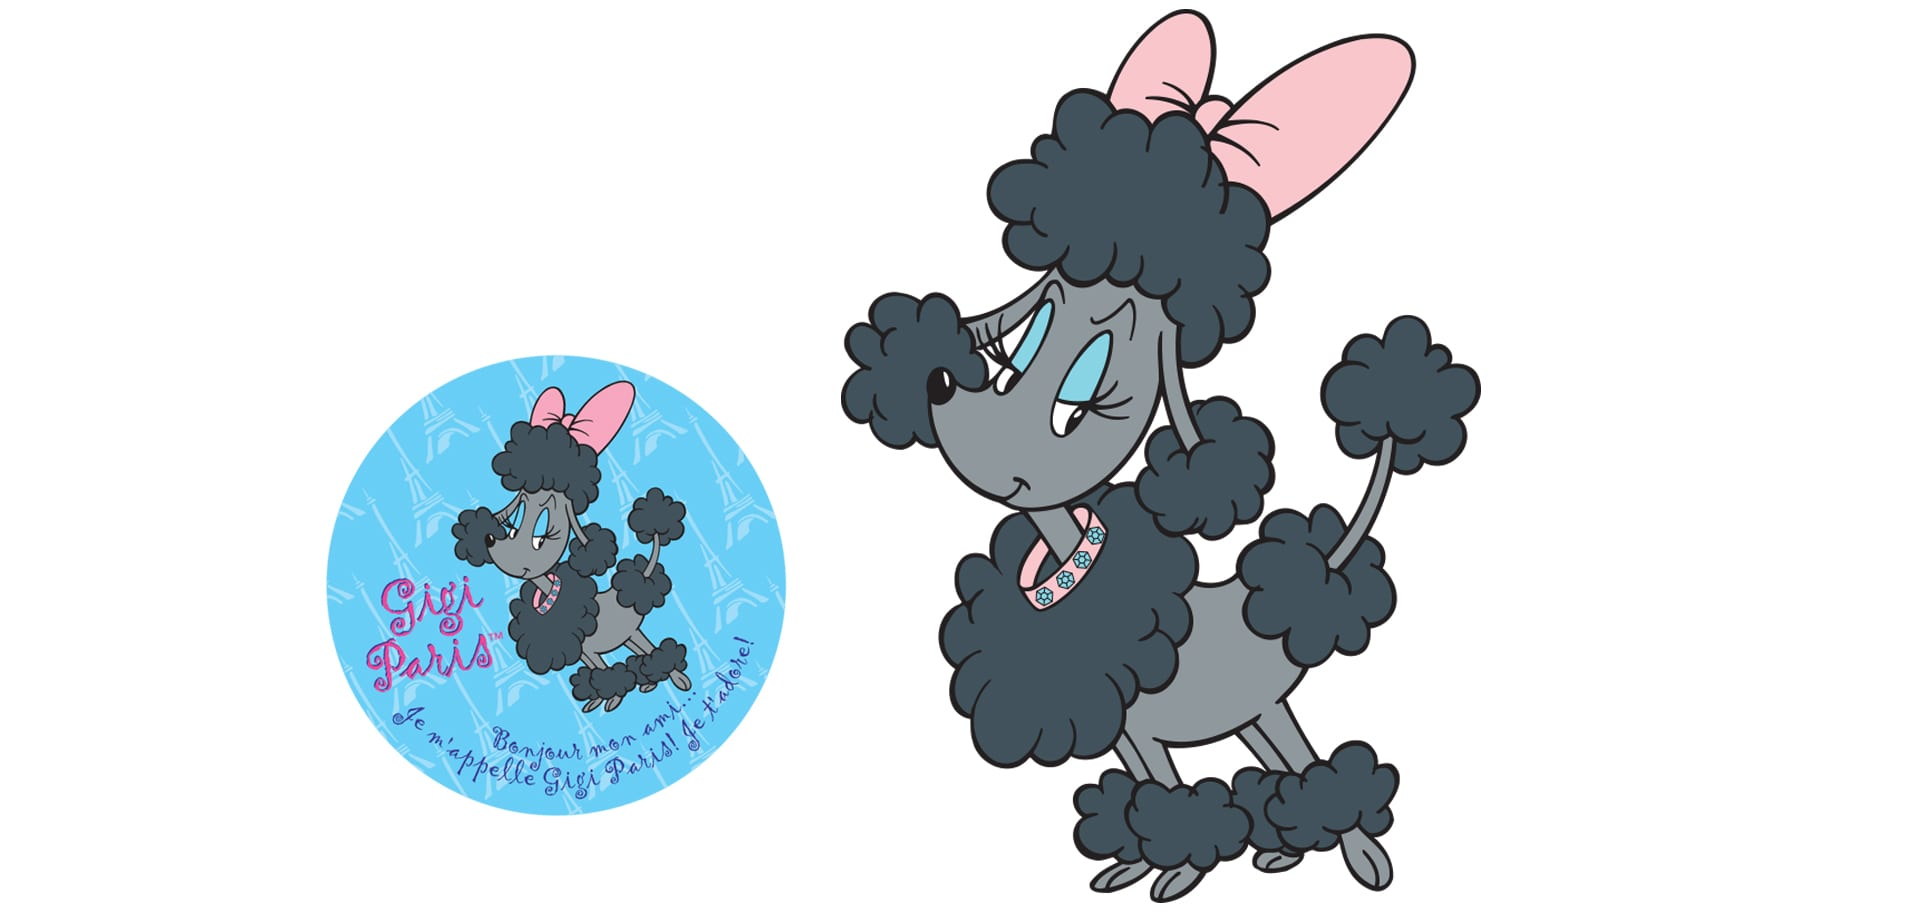 An illustration of Gigi the French Poodle